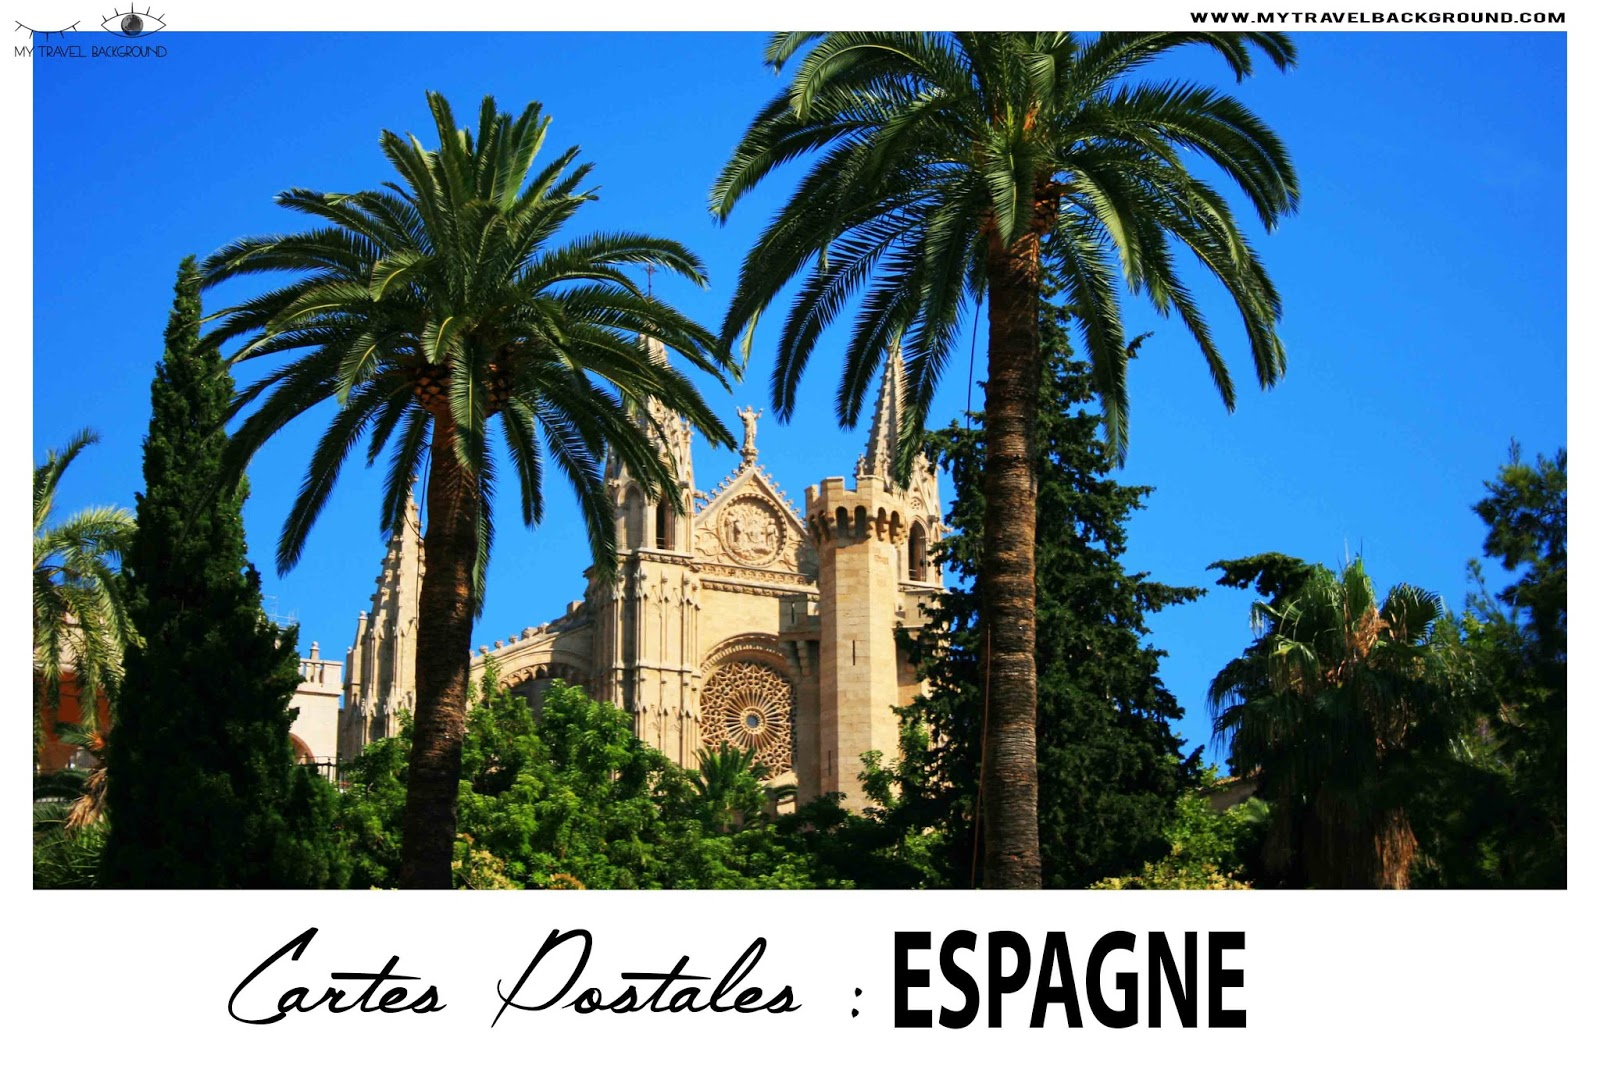 My Travel Background : Cartes Postale Espagne